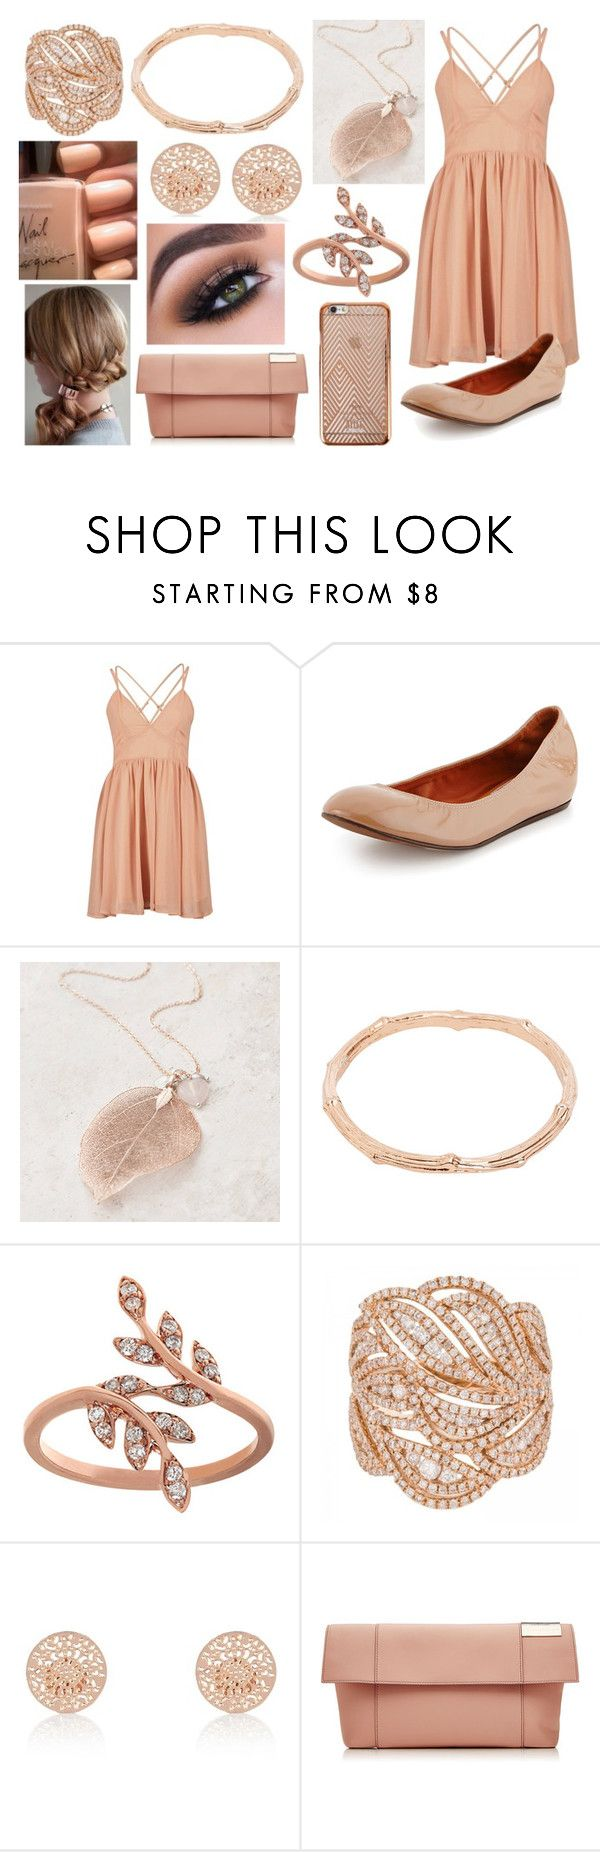 """""""Dress Outfit 65"""" by meranda-joi ❤ liked on Polyvore featuring Lanvin, River Island, Victoria Beckham, outfit, peach, dress, nude and rosegold"""